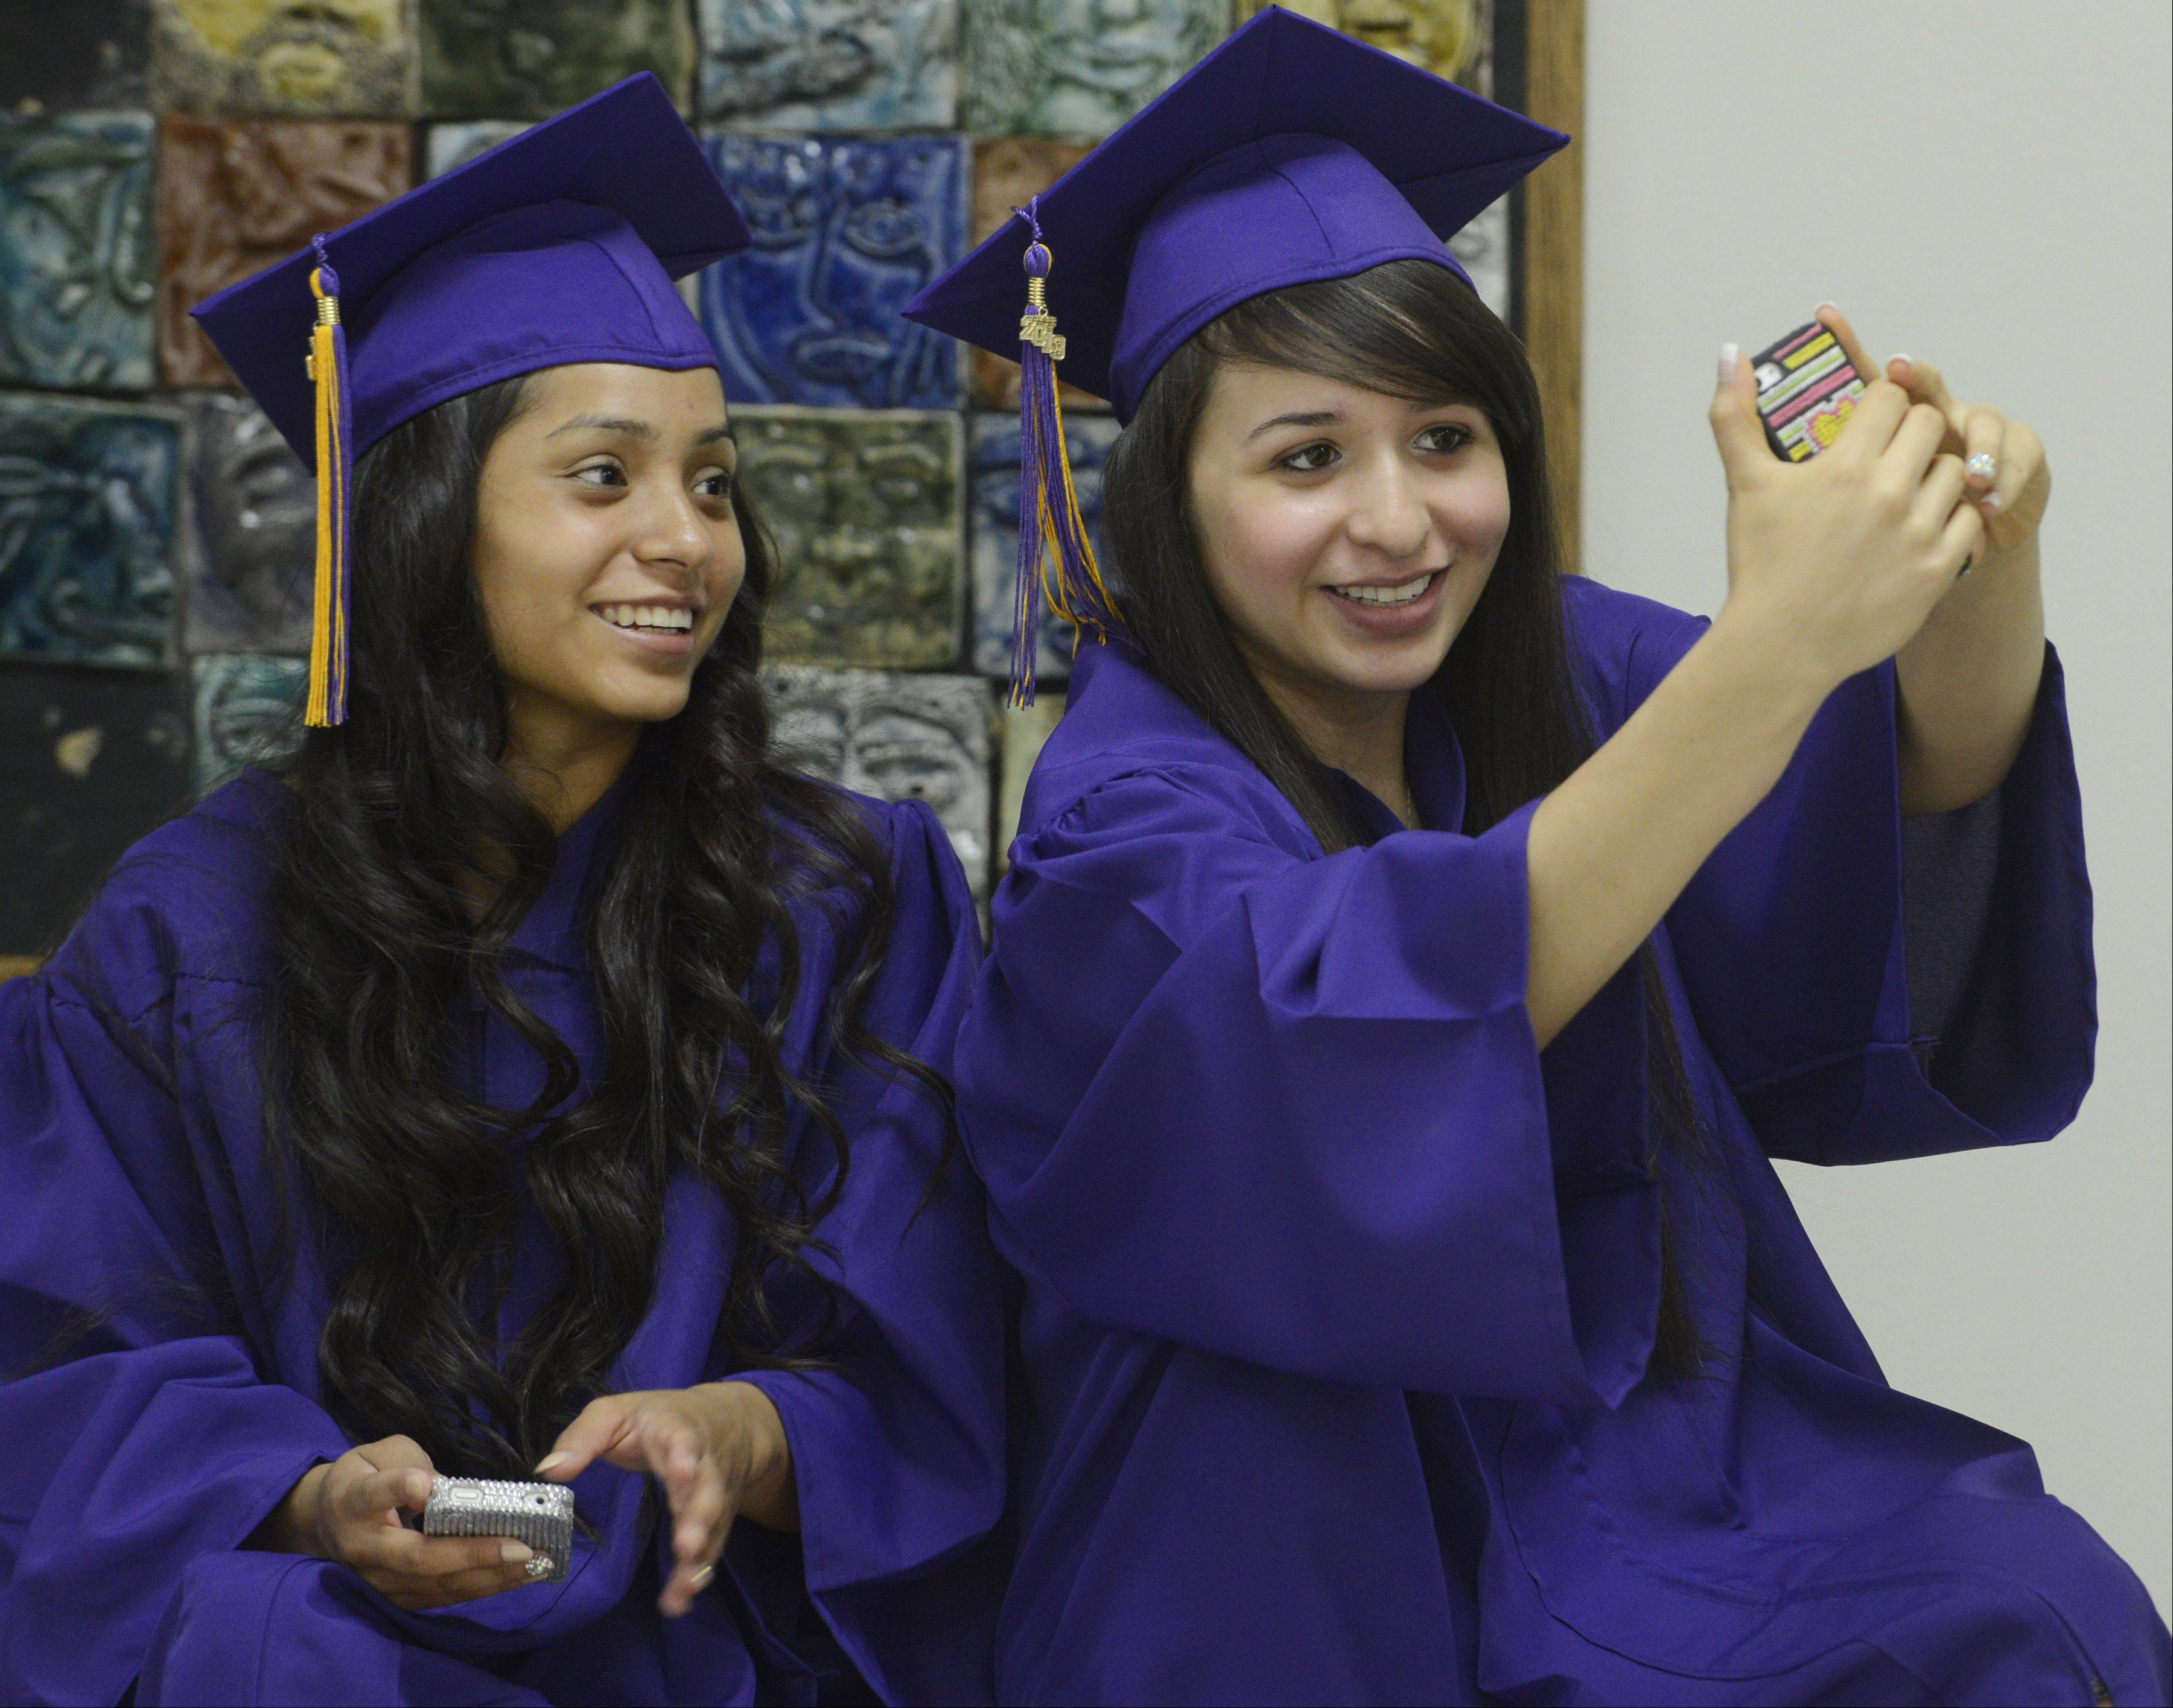 Guadalupe Flores, right, takes a photo of herself with friend Sury Rodriguez prior to the Rolling Meadows High School graduation Sunday.